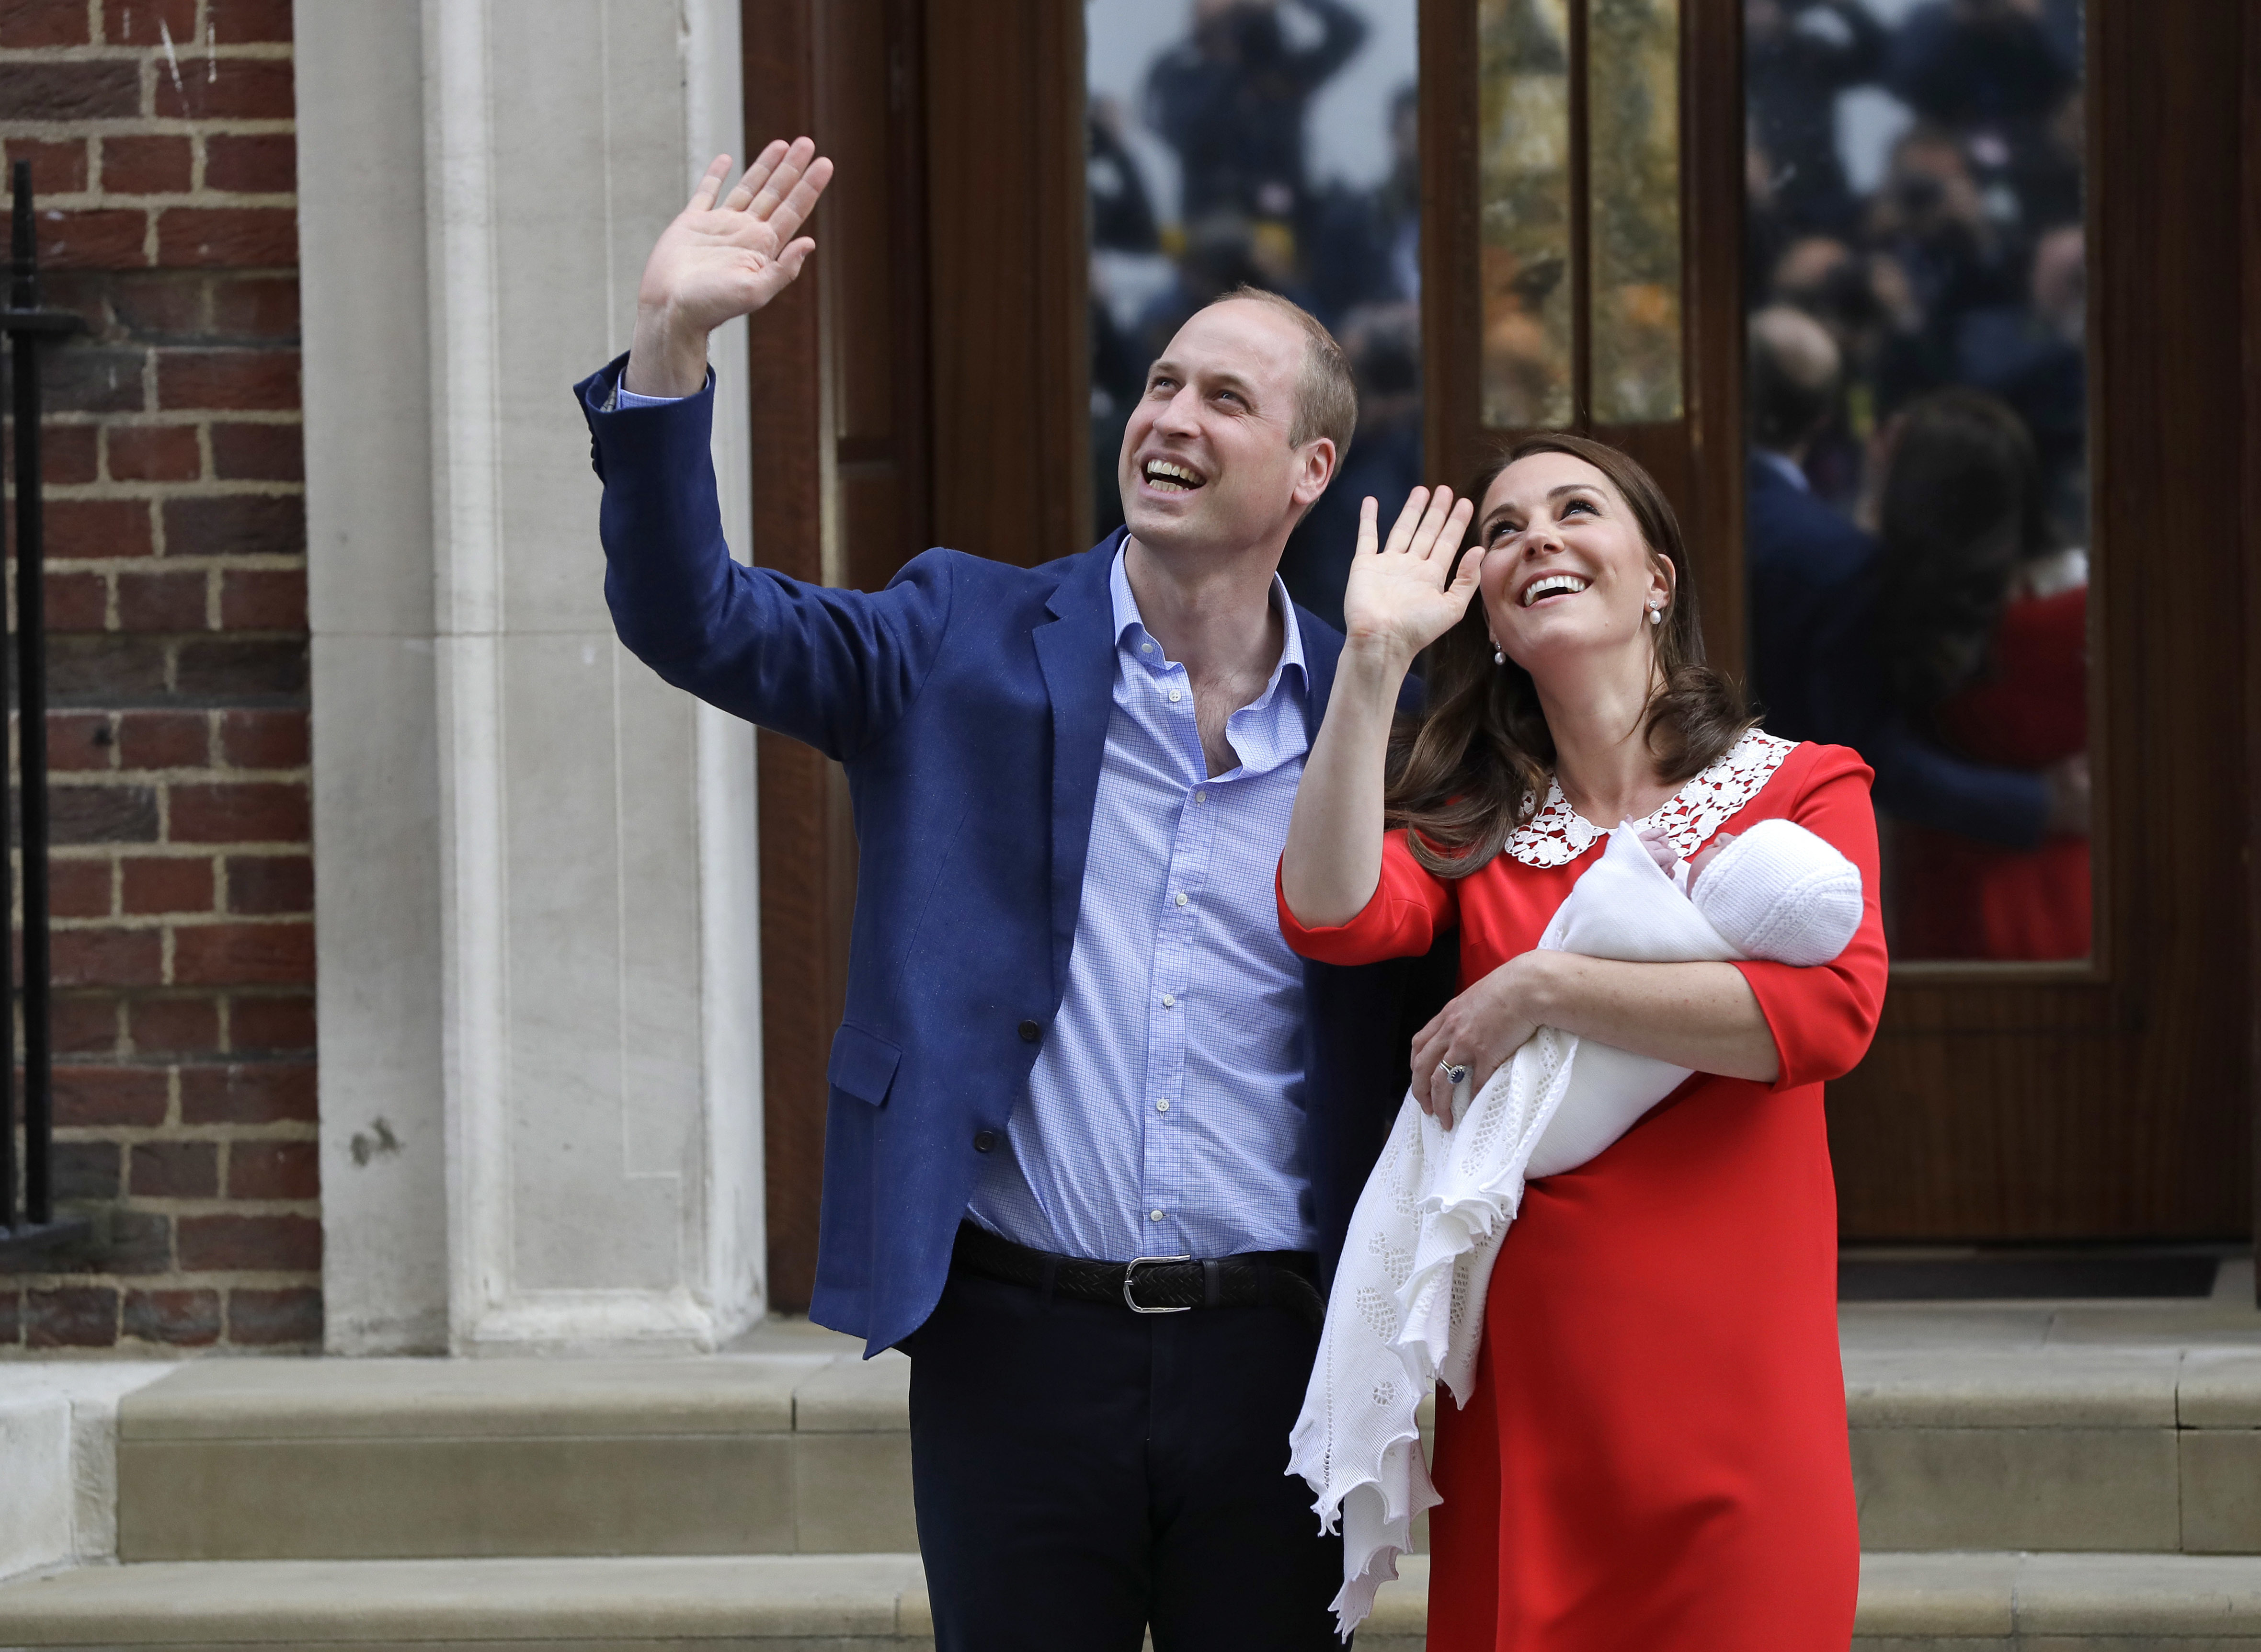 "<div class=""meta image-caption""><div class=""origin-logo origin-image none""><span>none</span></div><span class=""caption-text"">Prince William and Kate, Duchess of Cambridge wave holding their newborn baby son as they leave the Lindo wing at St Mary's Hospital in London London, Monday, April 23, 2018. (Kirsty Wigglesworth/AP Photo)</span></div>"